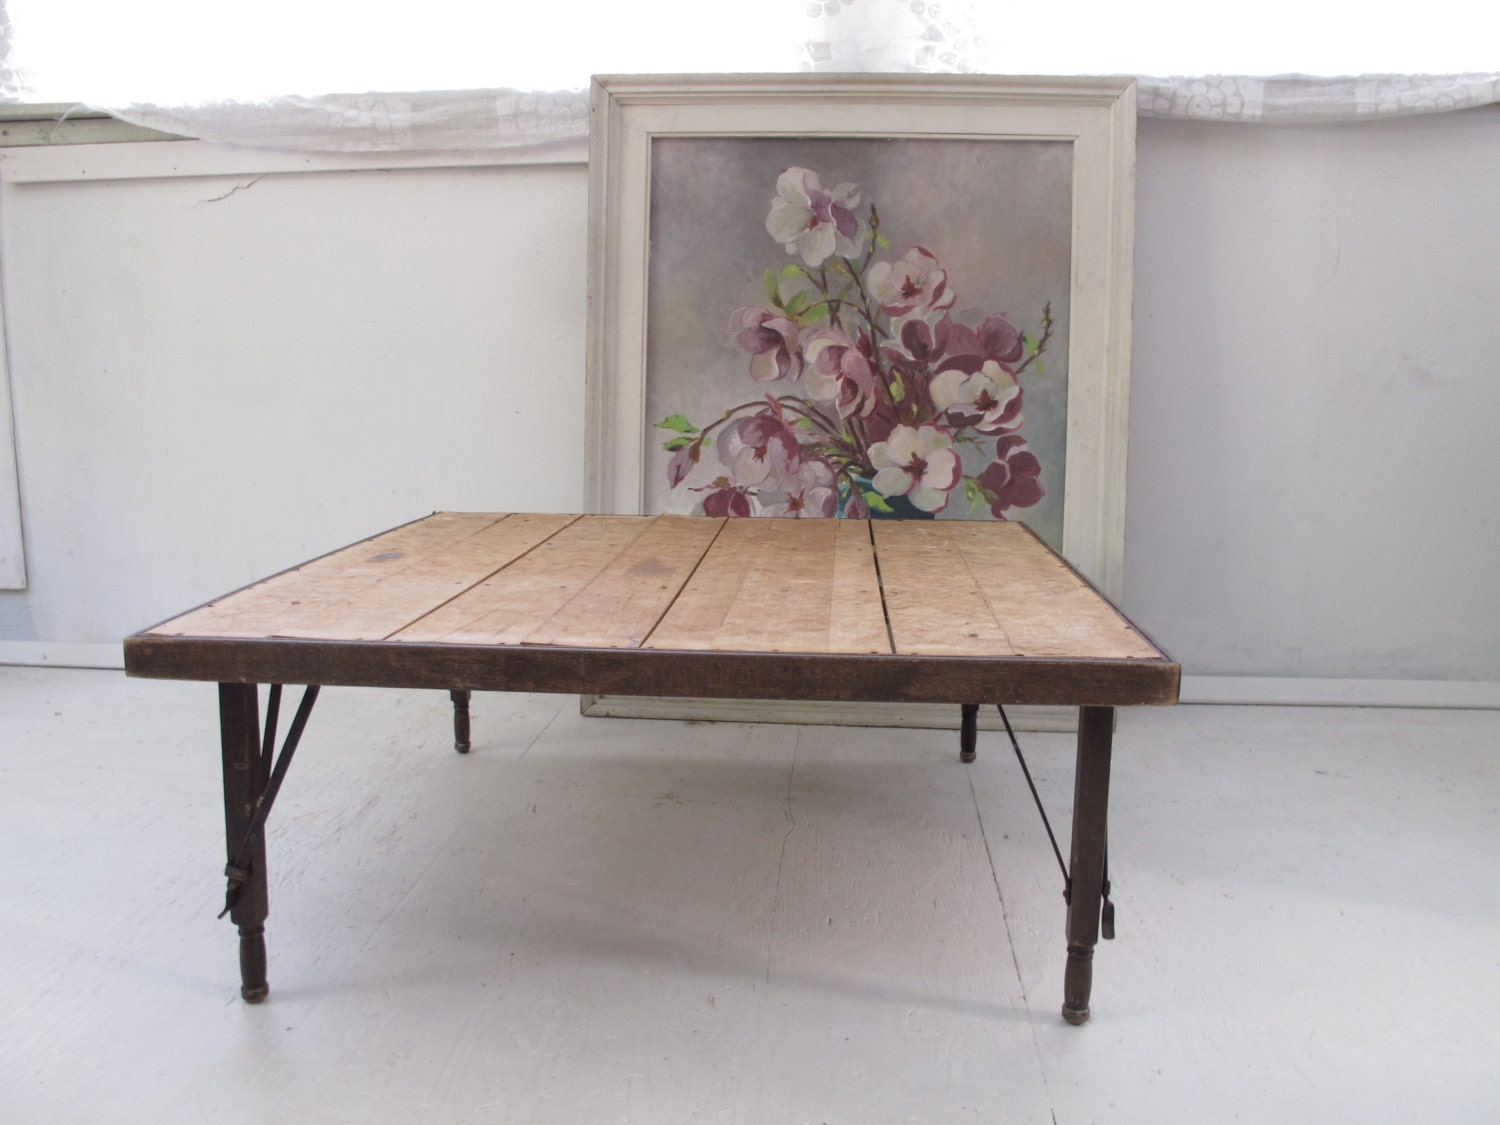 Wooden Folding Table Vintage Travel Table Gatsby by SoSylvie